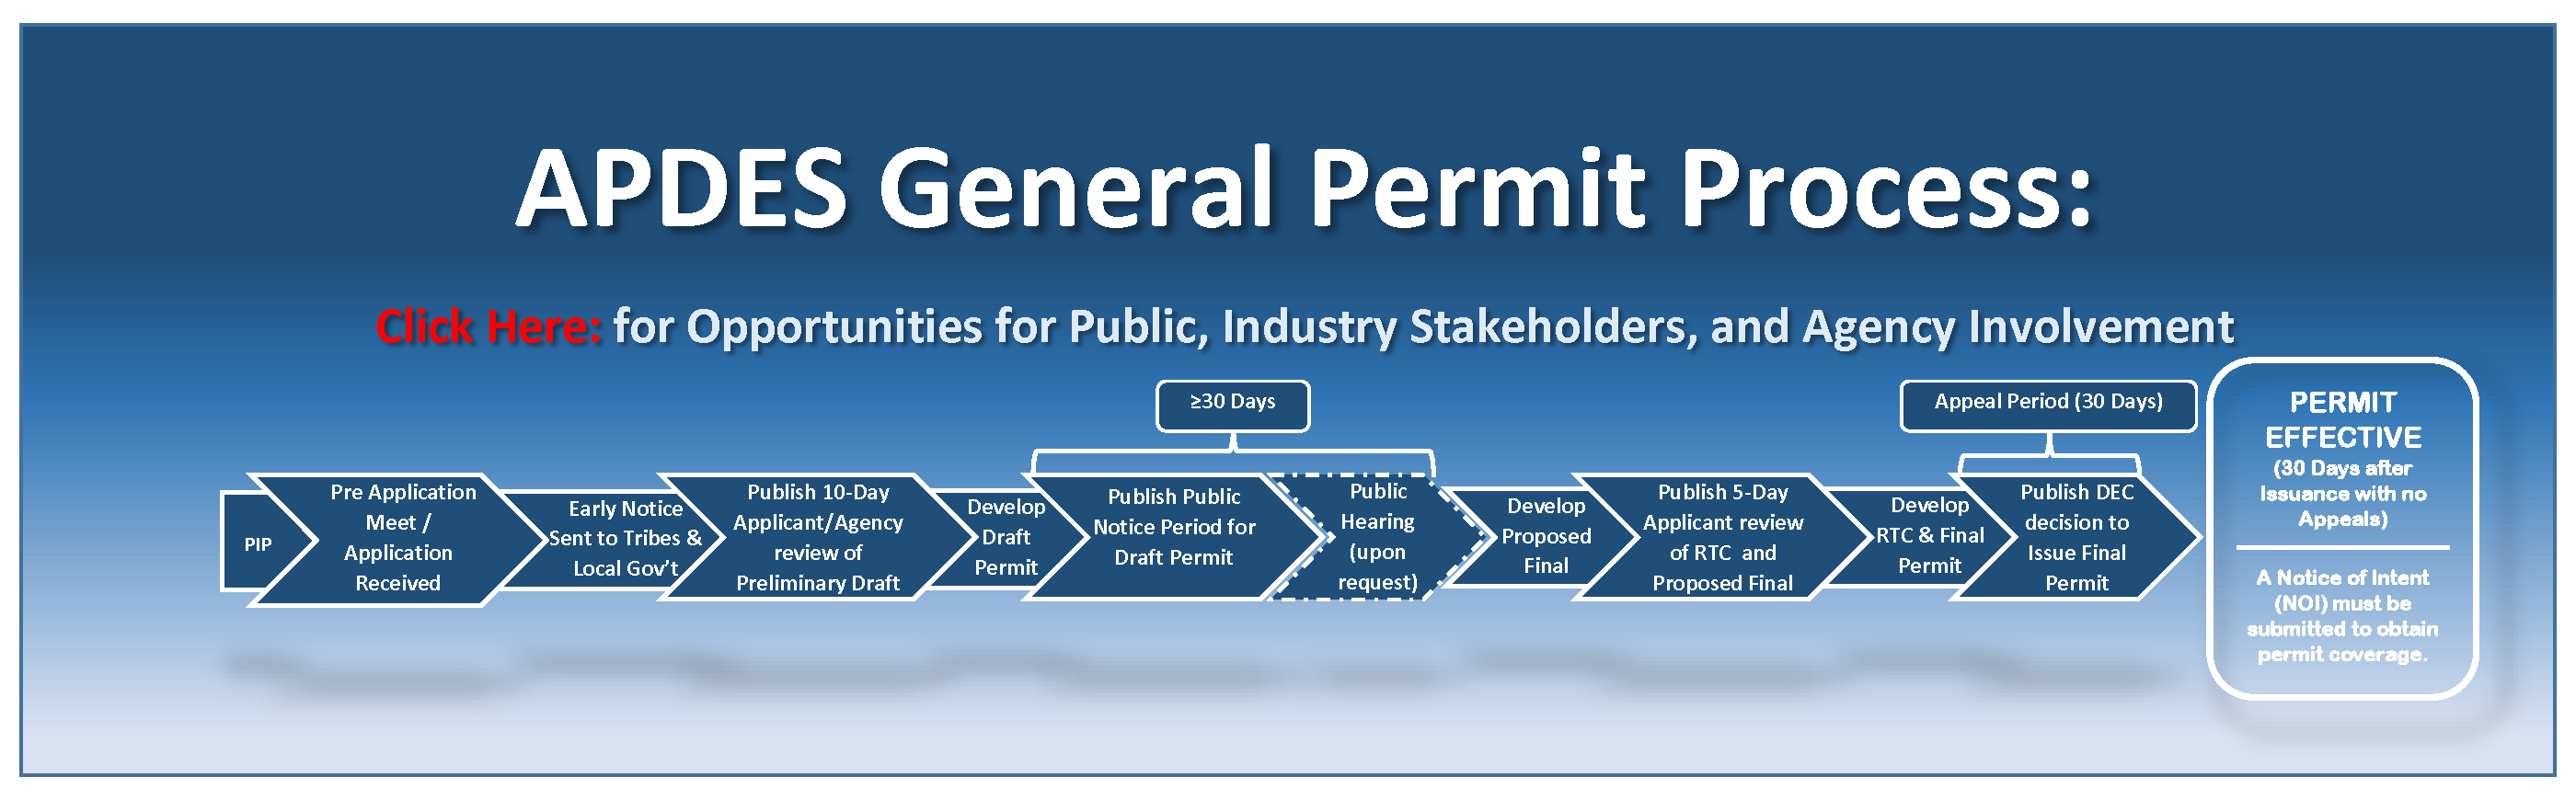 Participation Flow Diagram for the General Permit Development Process